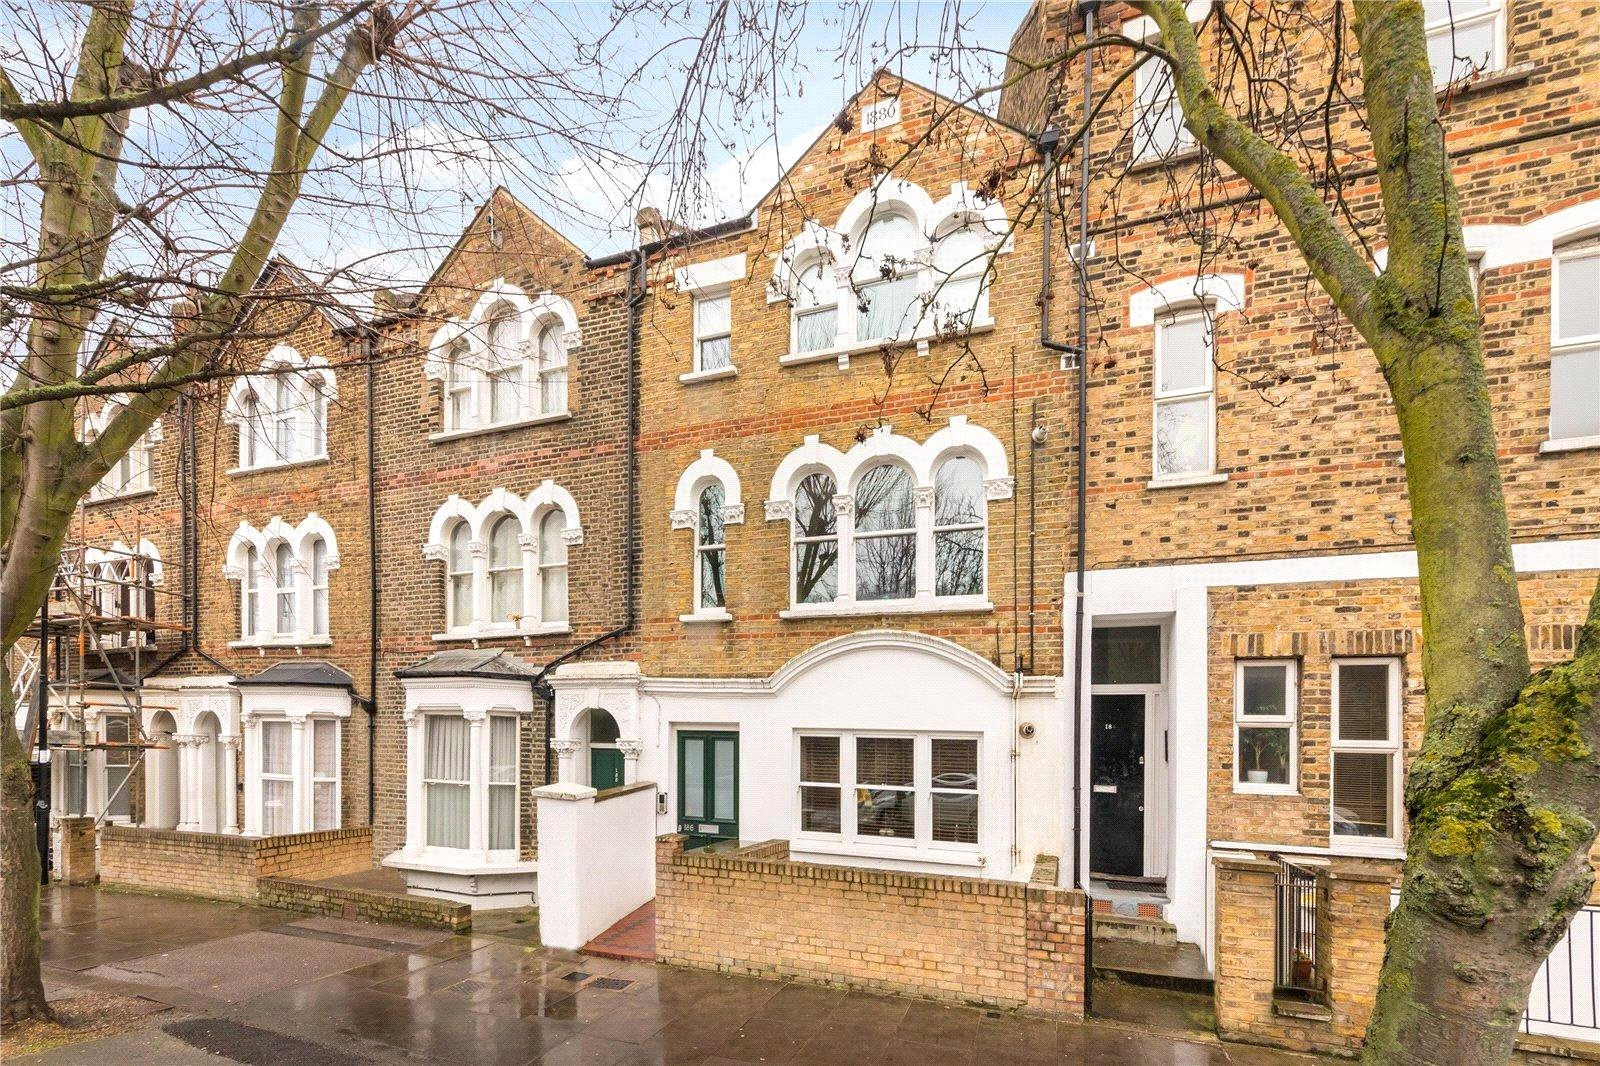 2 bed apartment to rent in Arsenal, N5 1LU  - Property Image 7